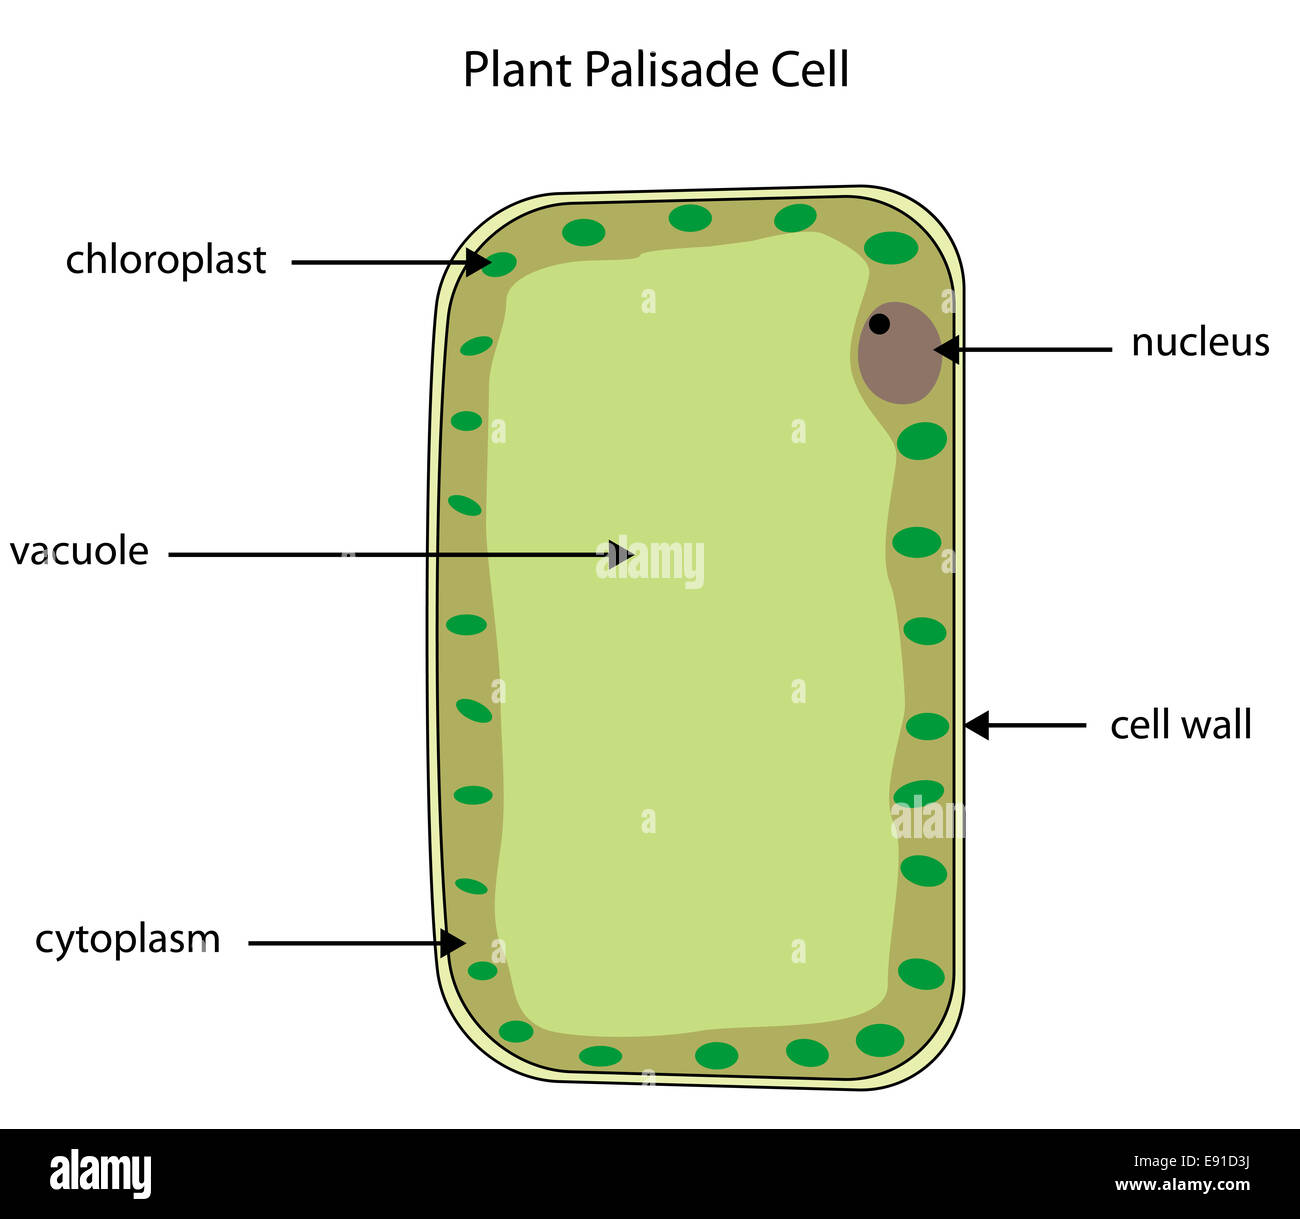 Plant cell nucleus stock photos plant cell nucleus stock images labeled diagram of a plant palisade cell where photosynthesis takes place stock image ccuart Gallery